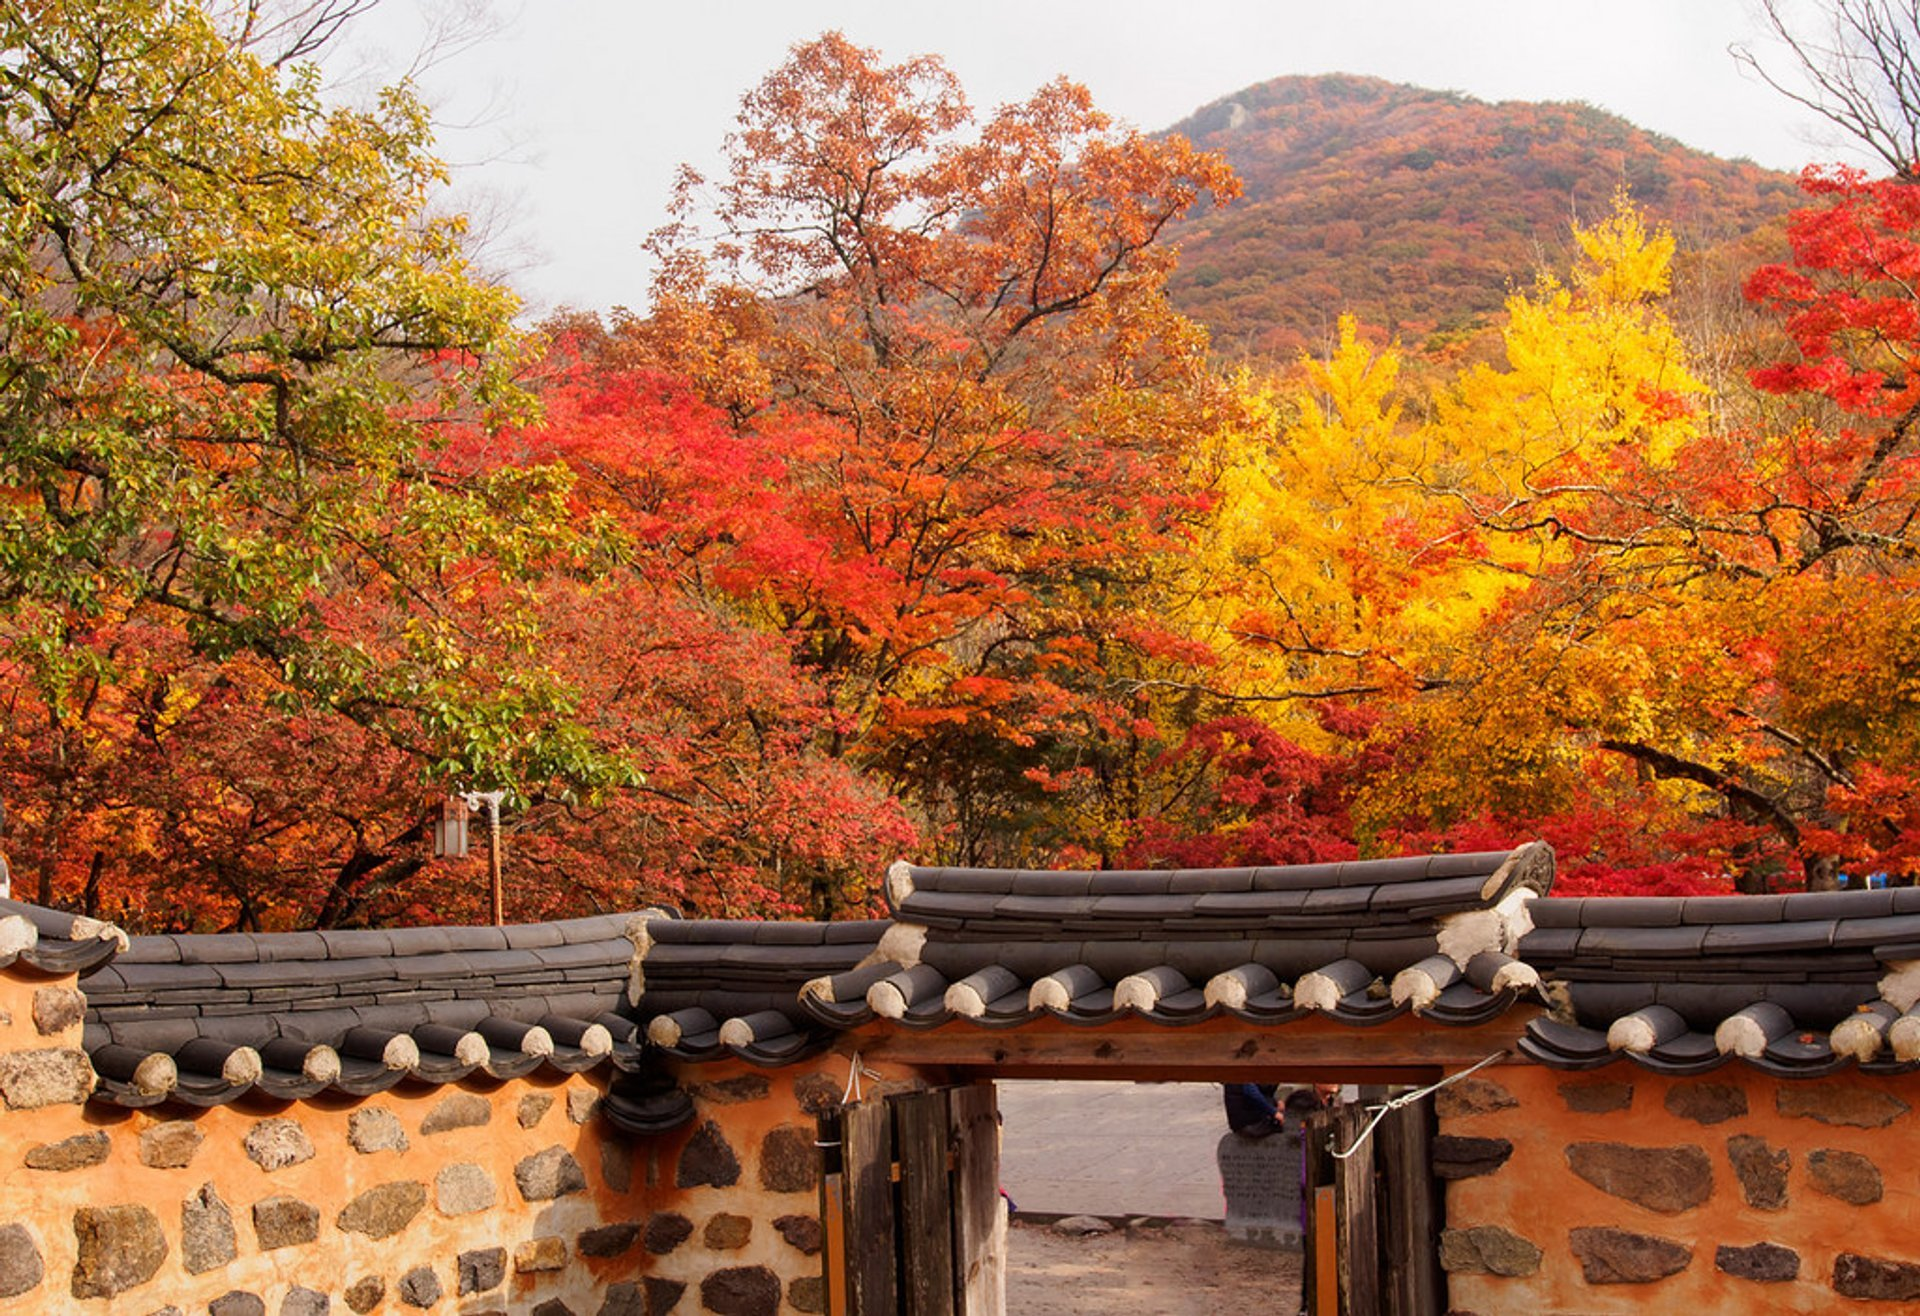 Autumn in South Korea 2019 - Best Time